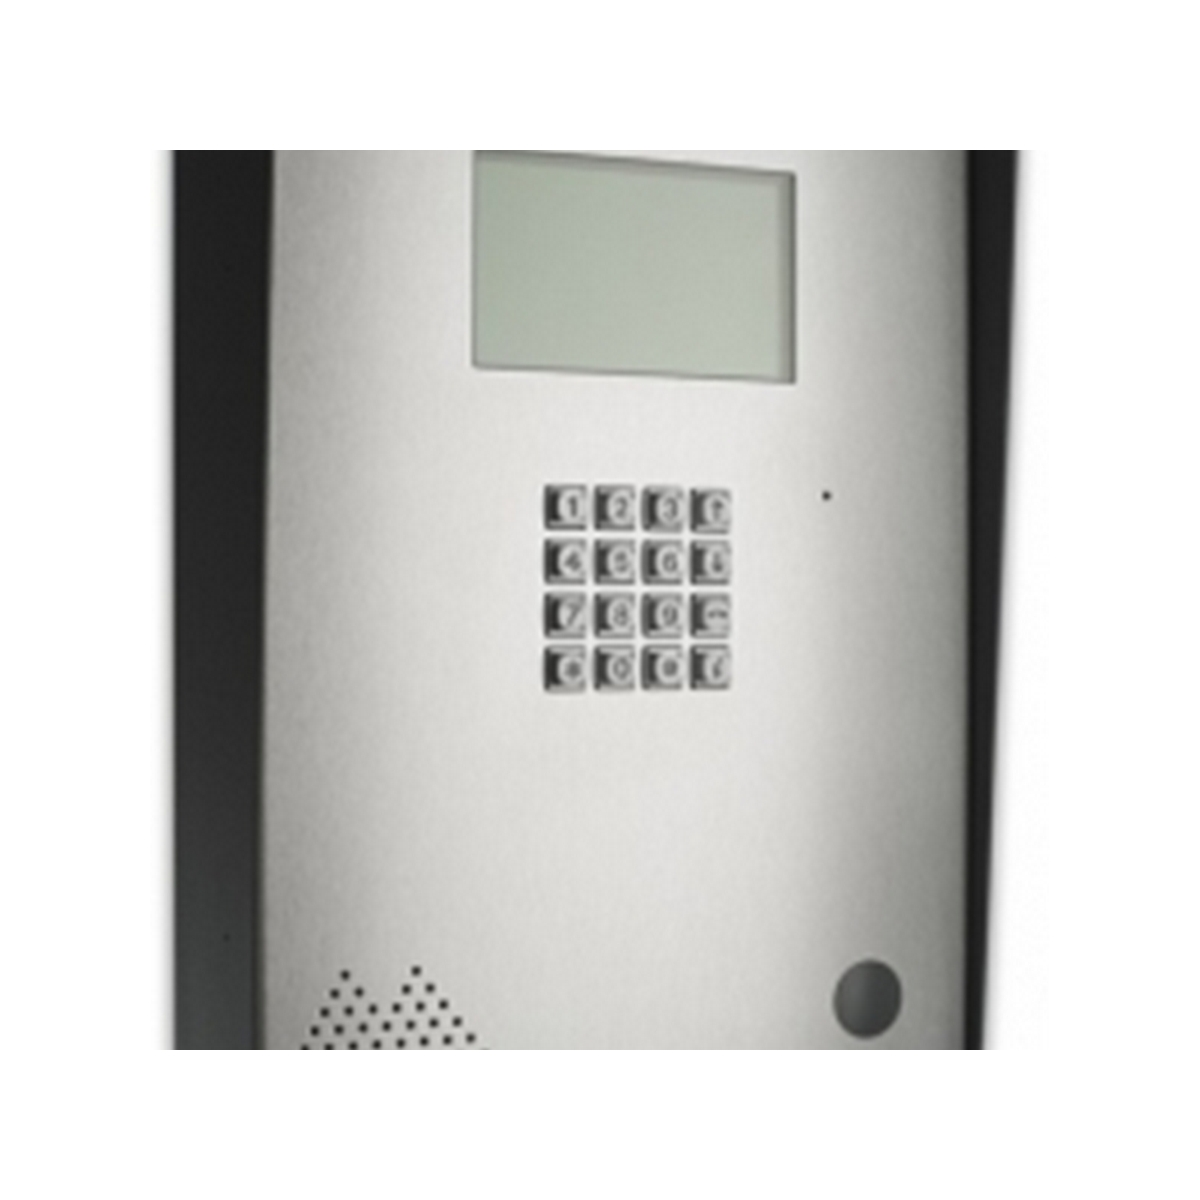 Mircom TX3 Hands Free Electronic Directory Telephone Access Systems - up to 1000 names